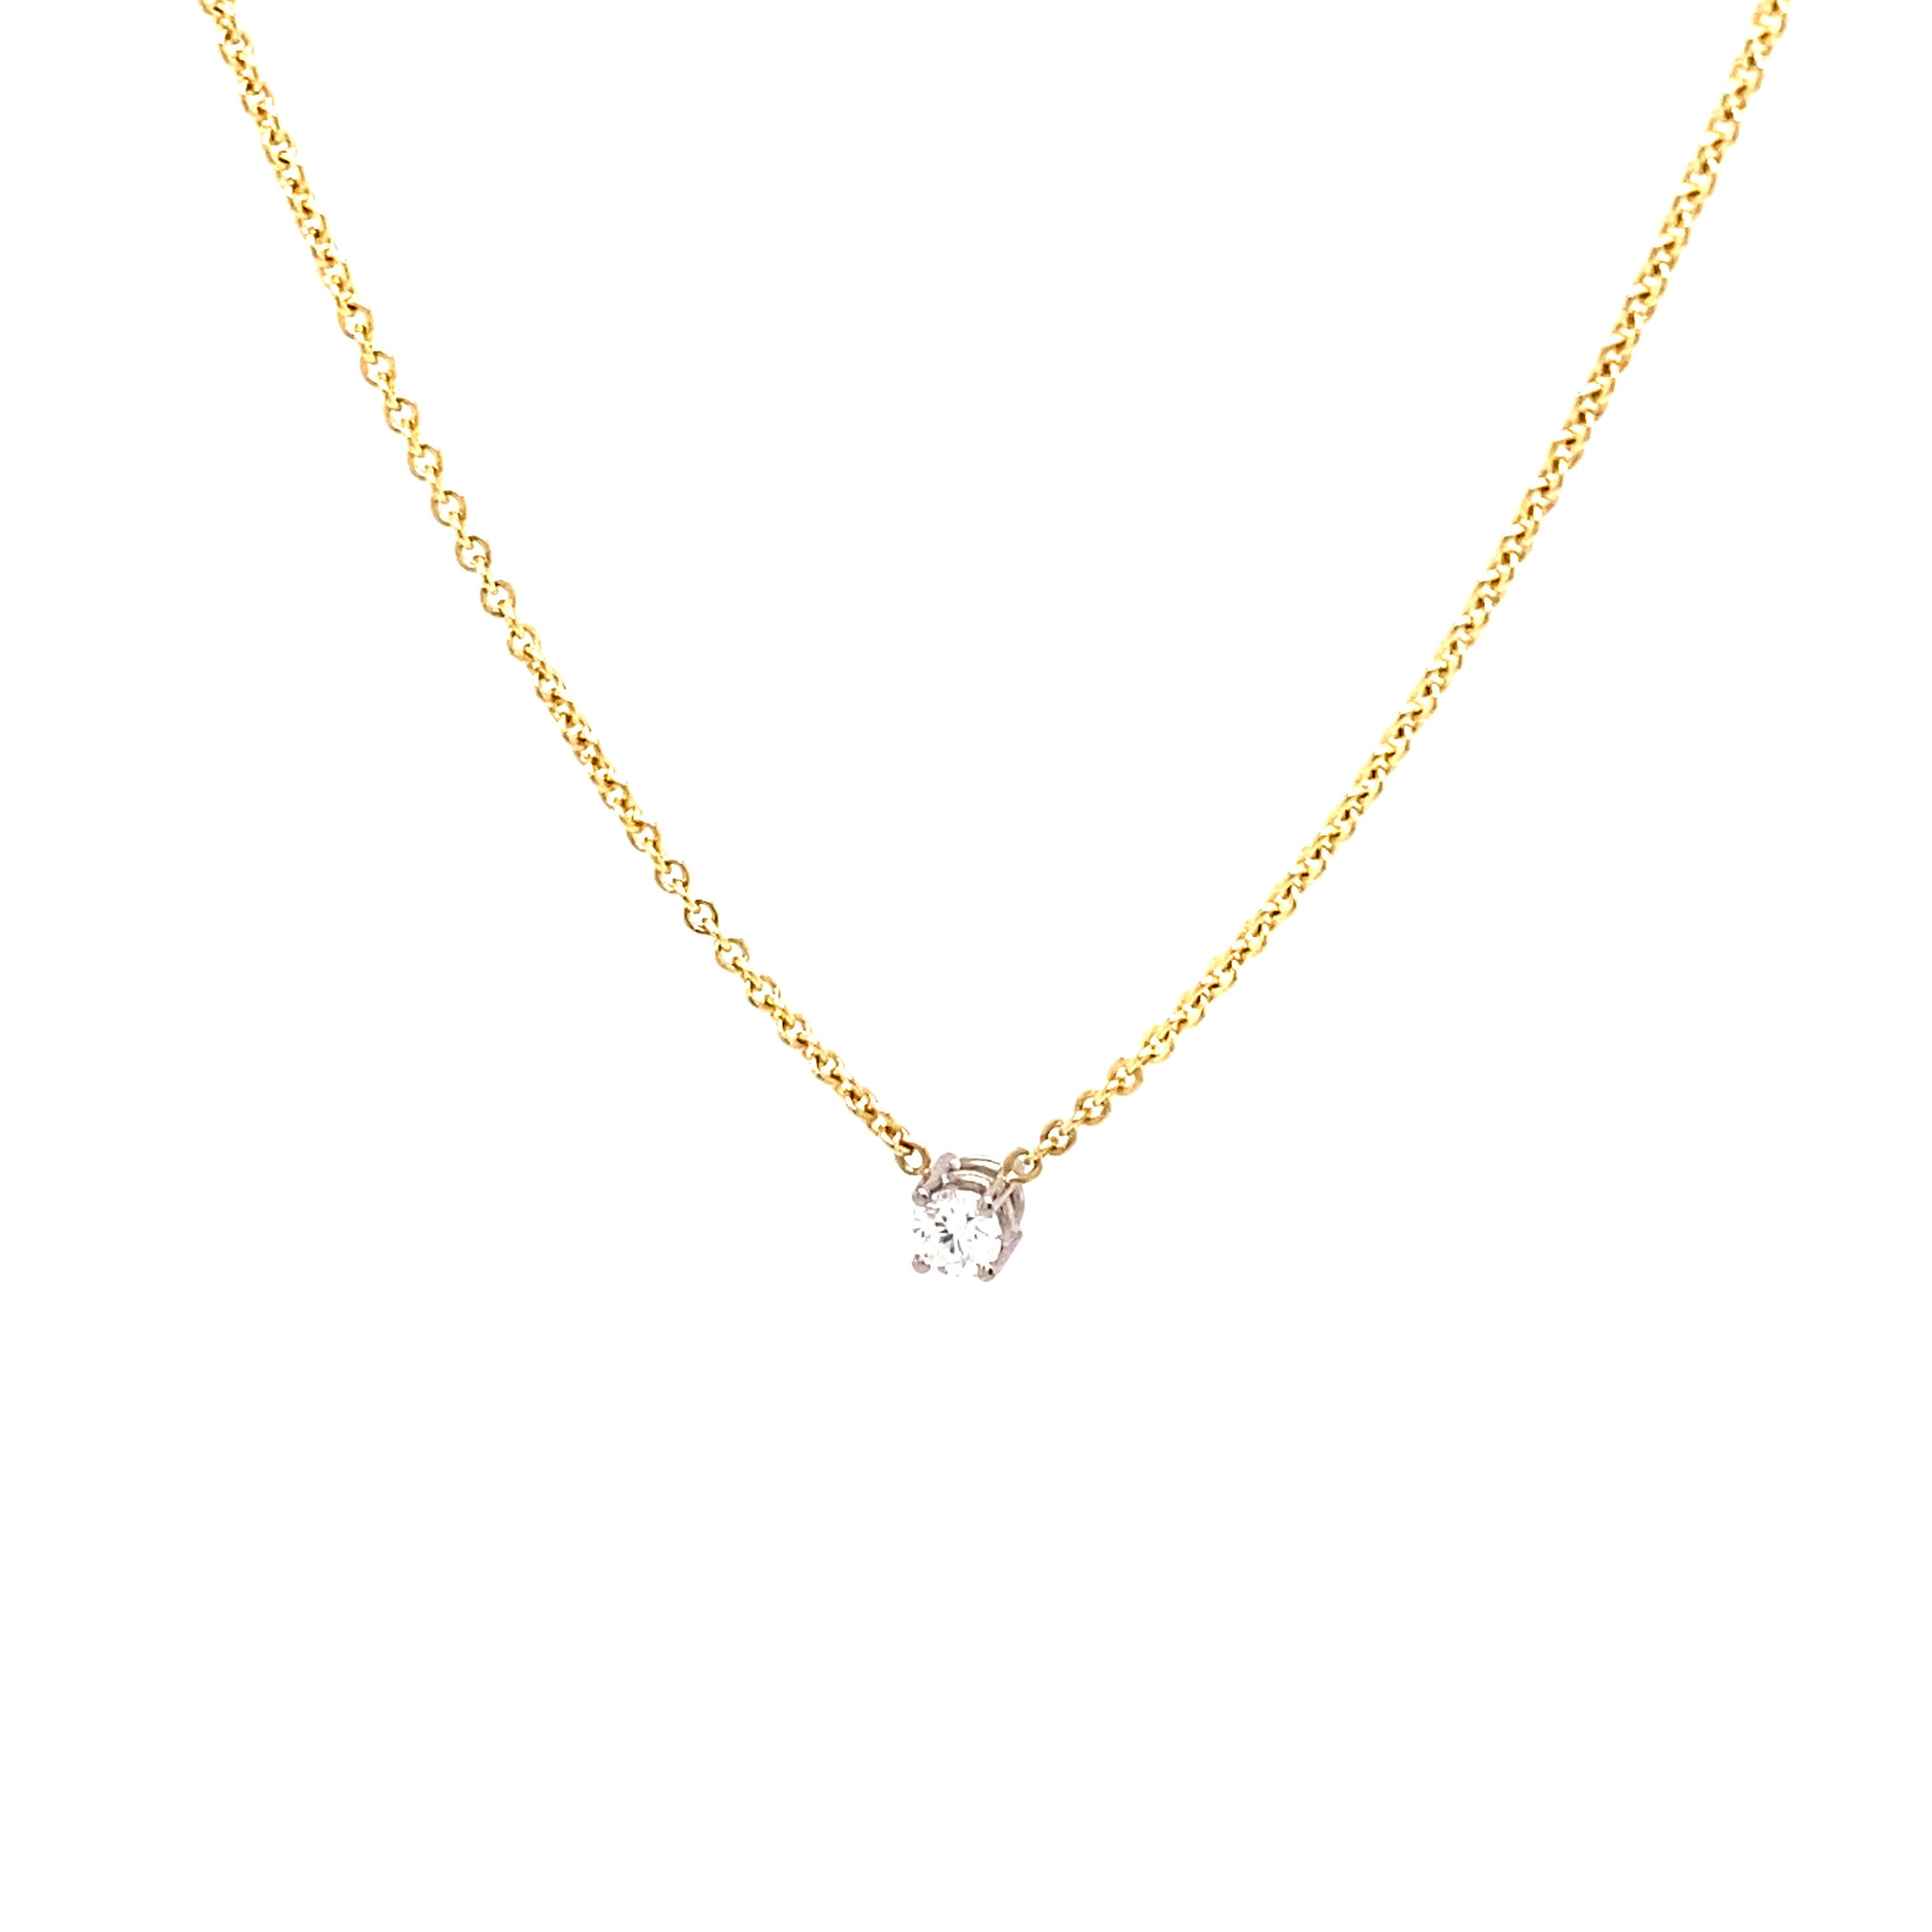 Private Label CvdK Private Label CvdK  gouden collier diamant